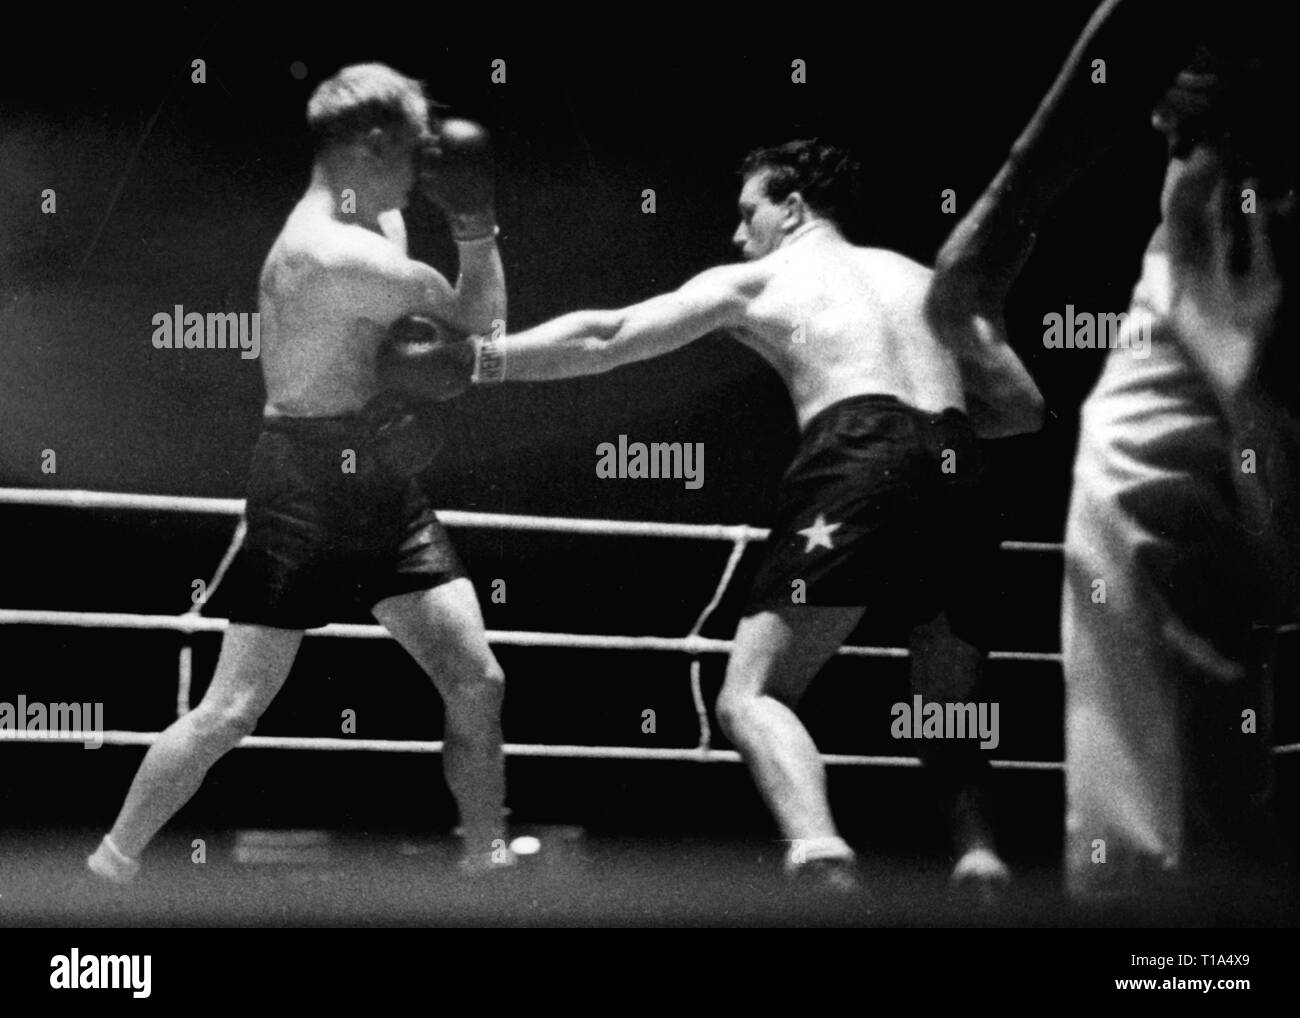 Sports, boxe, boxe Gustave Roth (Belgique) contre Jupp Besselmann (Allemagne), Roth (un hit, Sportpalast, Berlin, 31.1.1938, Additional-Rights Clearance-Info-Not-Available- Photo Stock